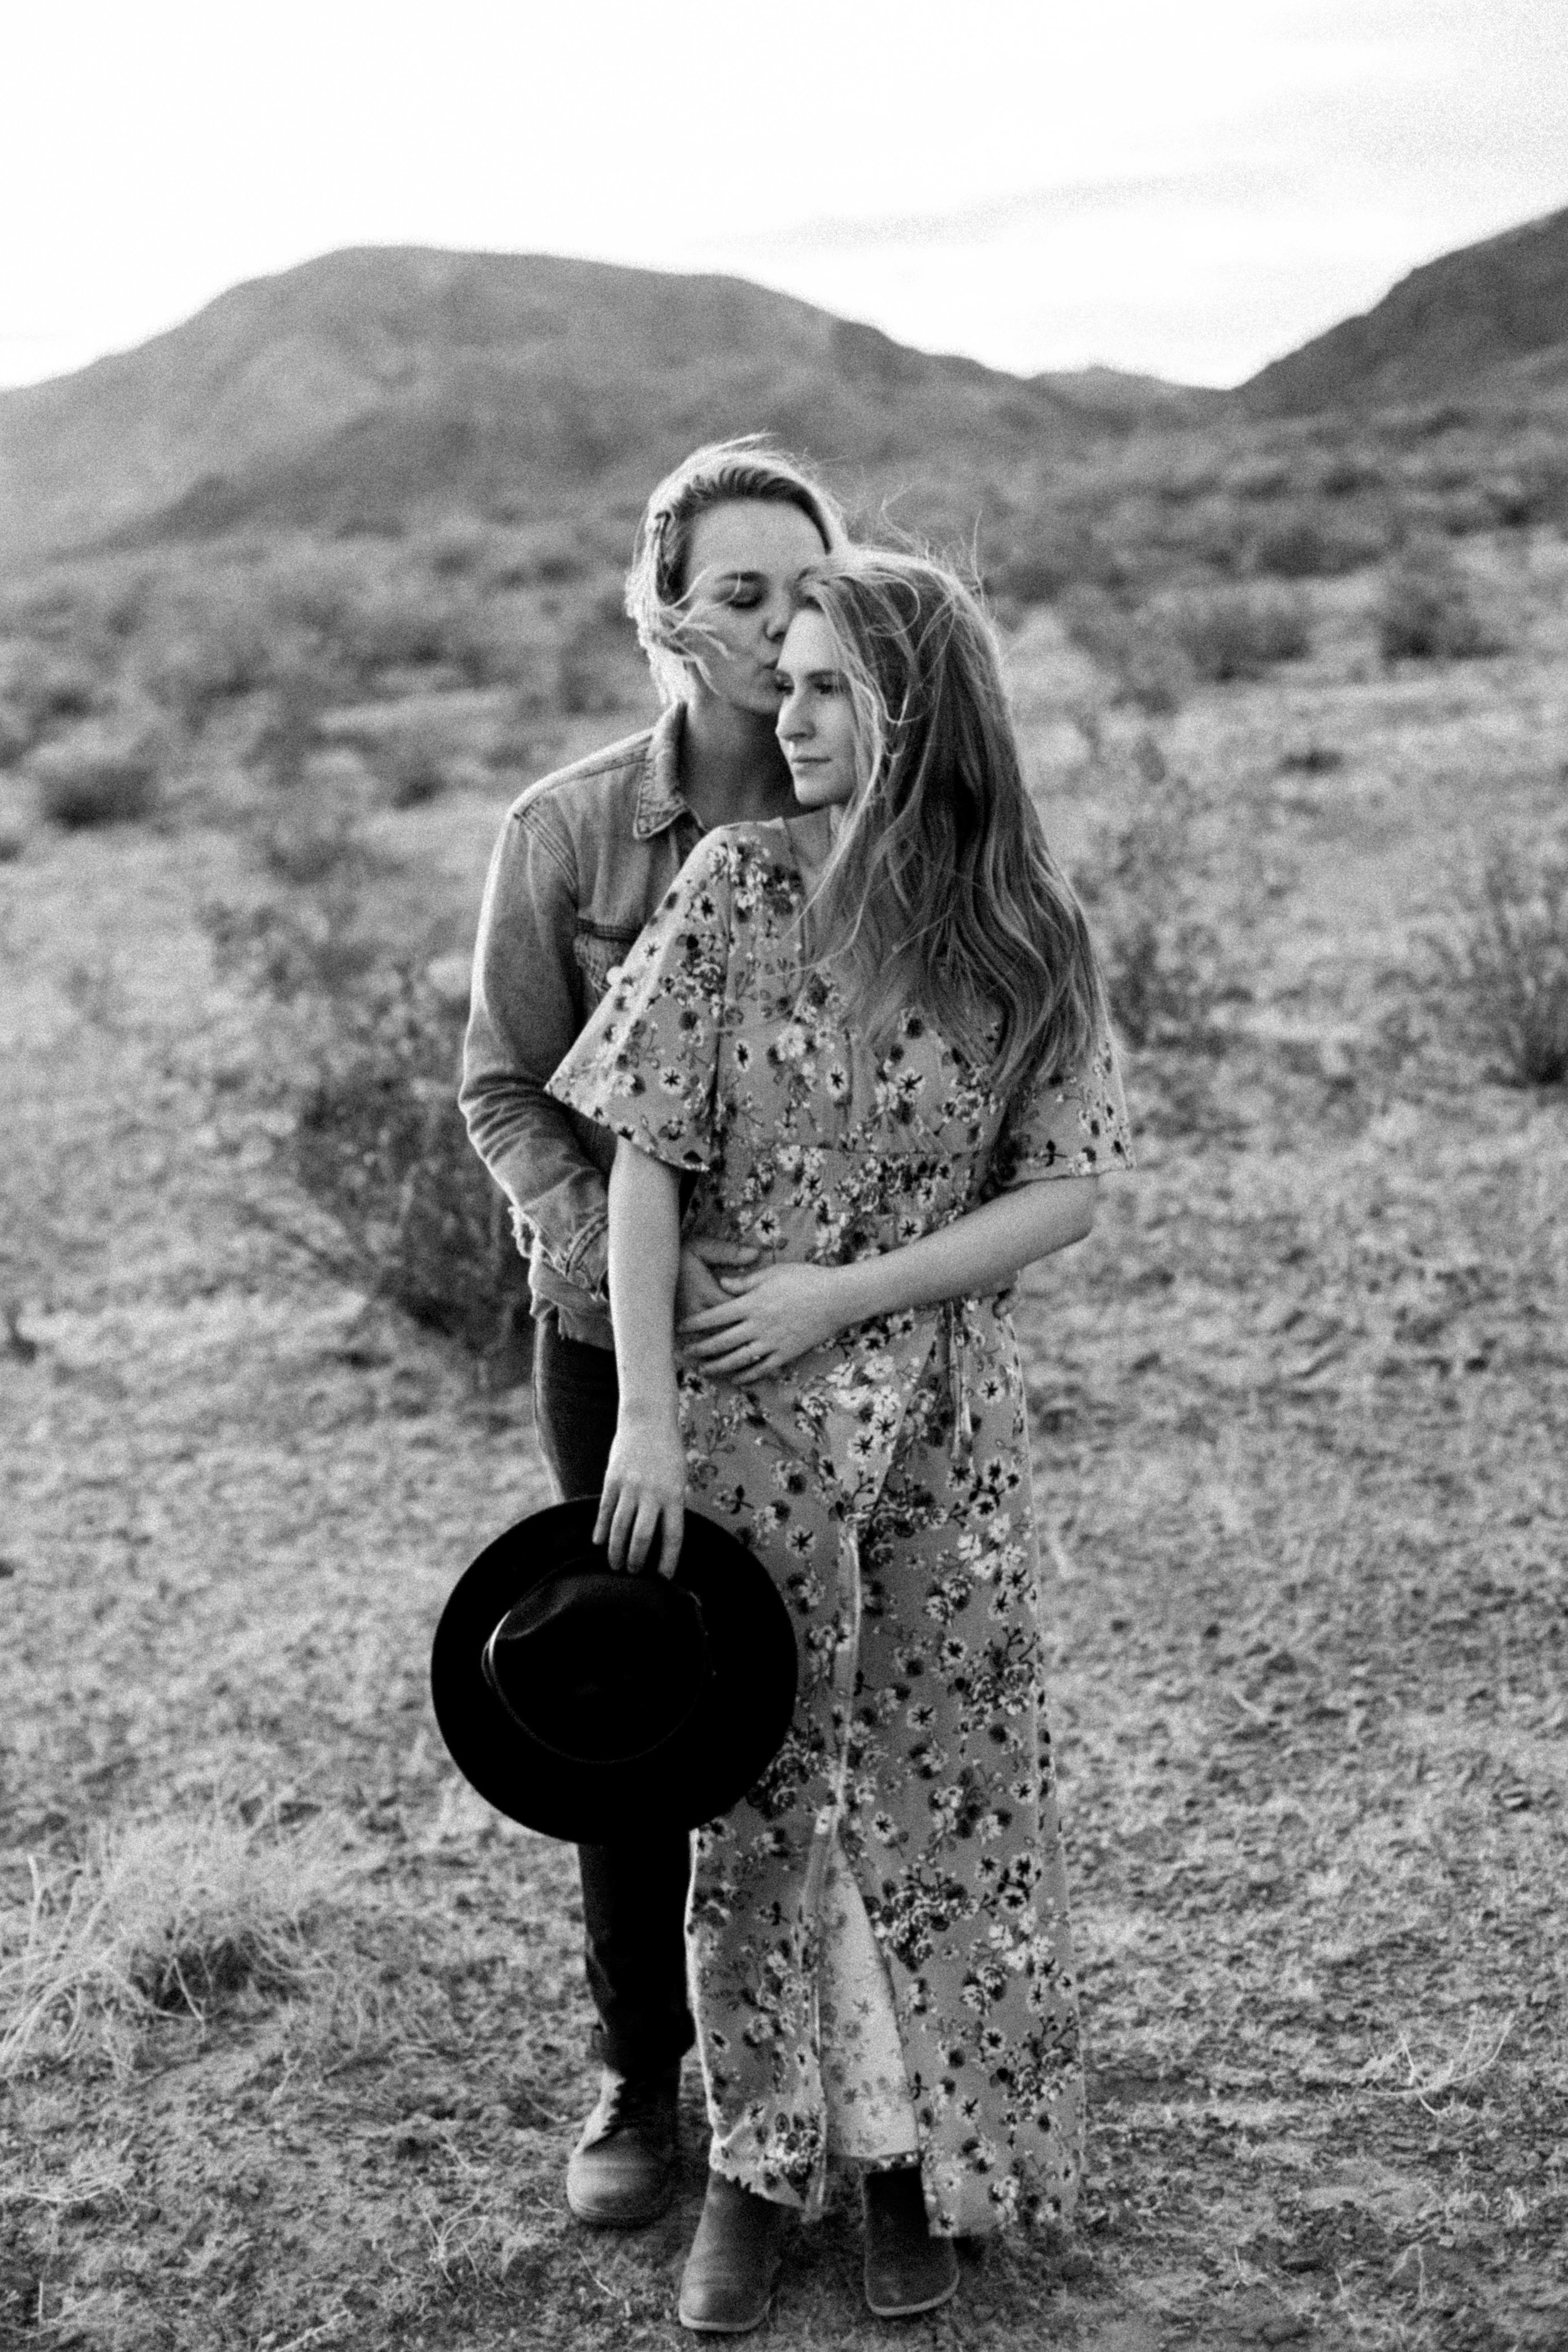 Brenna + Taylor | Ashlyn Savannah Photo | Las Vegas Photographer-214.jpg